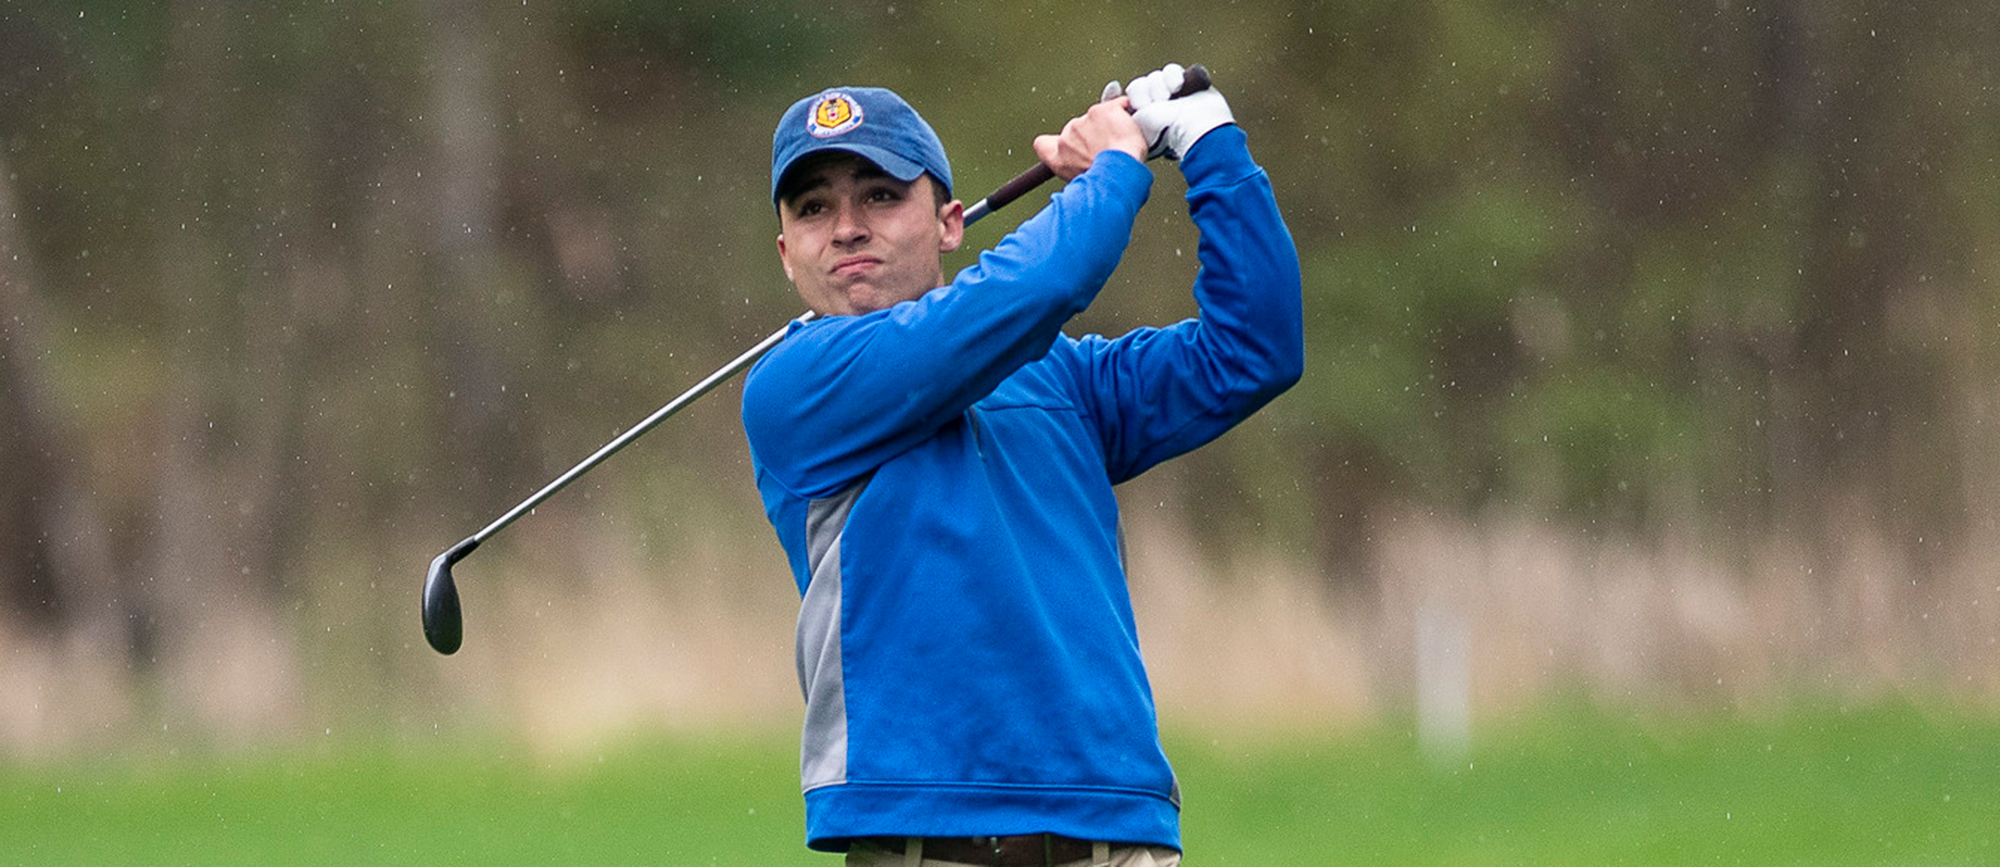 Cameron Cox is tied for second place at the NEIGA Championship after recording an even-par 72 on Sunday. (Photo by Ben Barnhart)